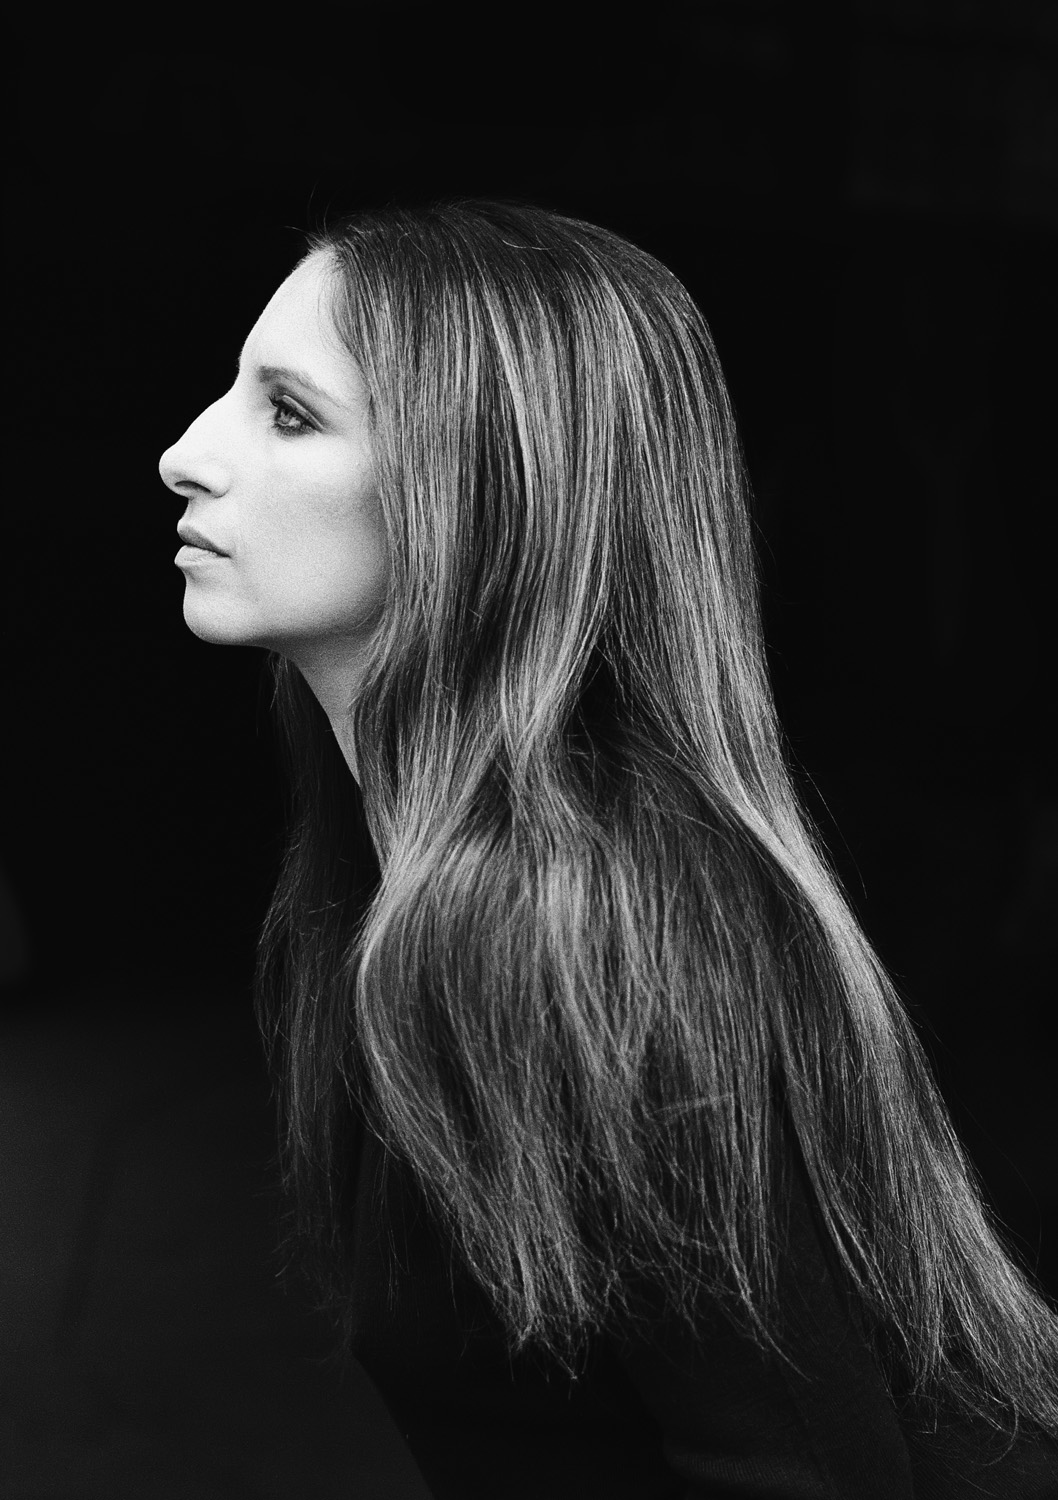 Barbra Streisand, Los Angeles, 1972                        Barbra Streisand has an amazing sense of what is right for                       her career. One of the secrets of her success is to demand                       her own way and she is almost always right in her choices                       and taste.